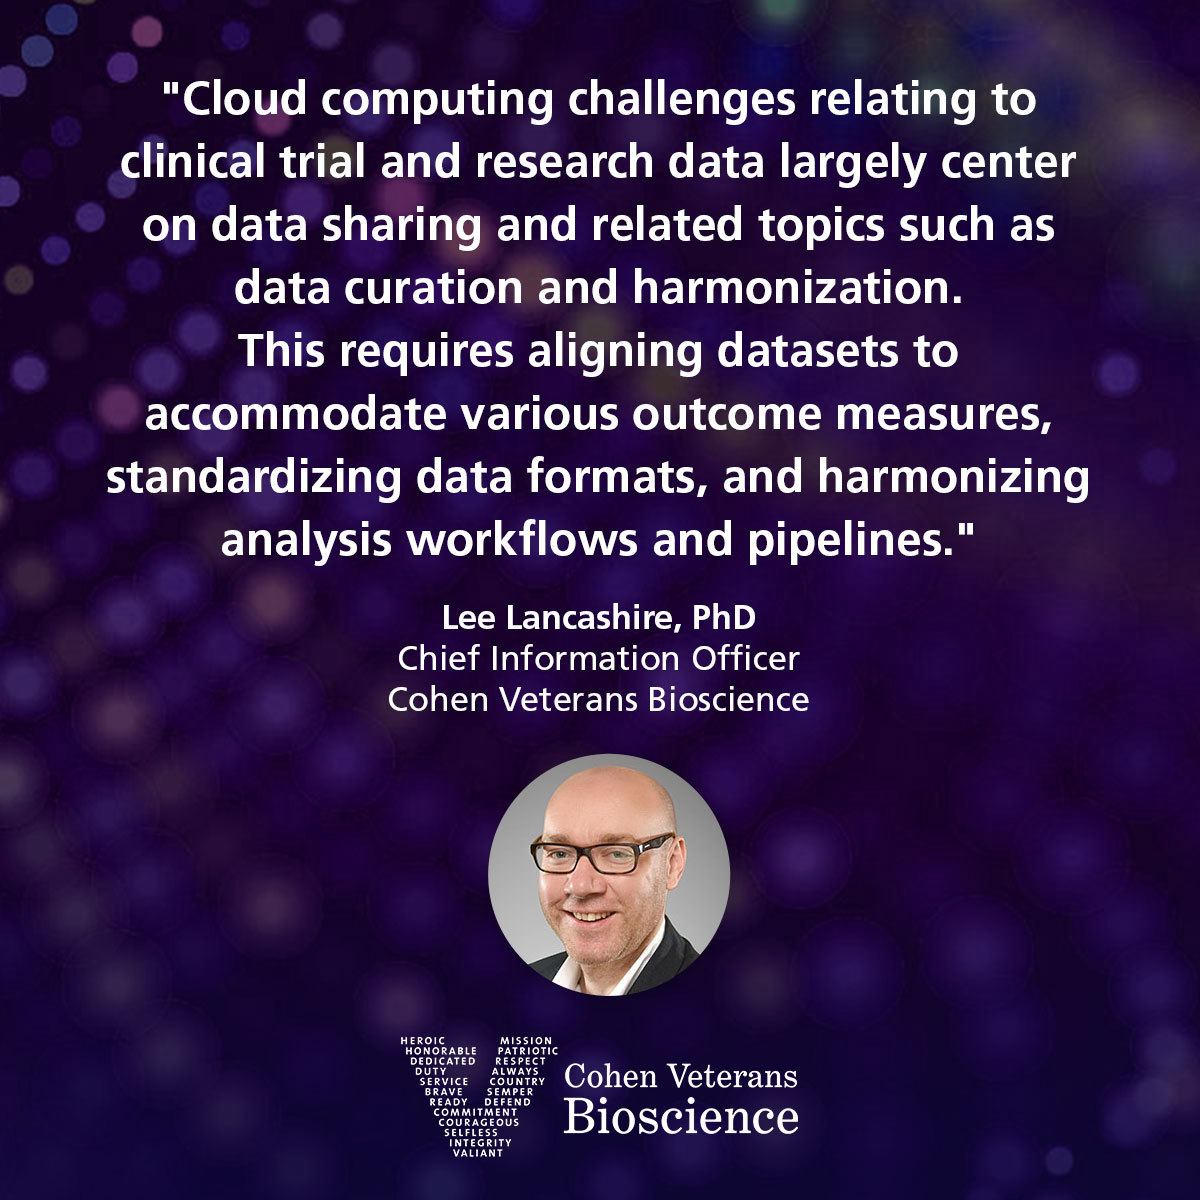 Quote from CIO Dr. Lee Lancashire